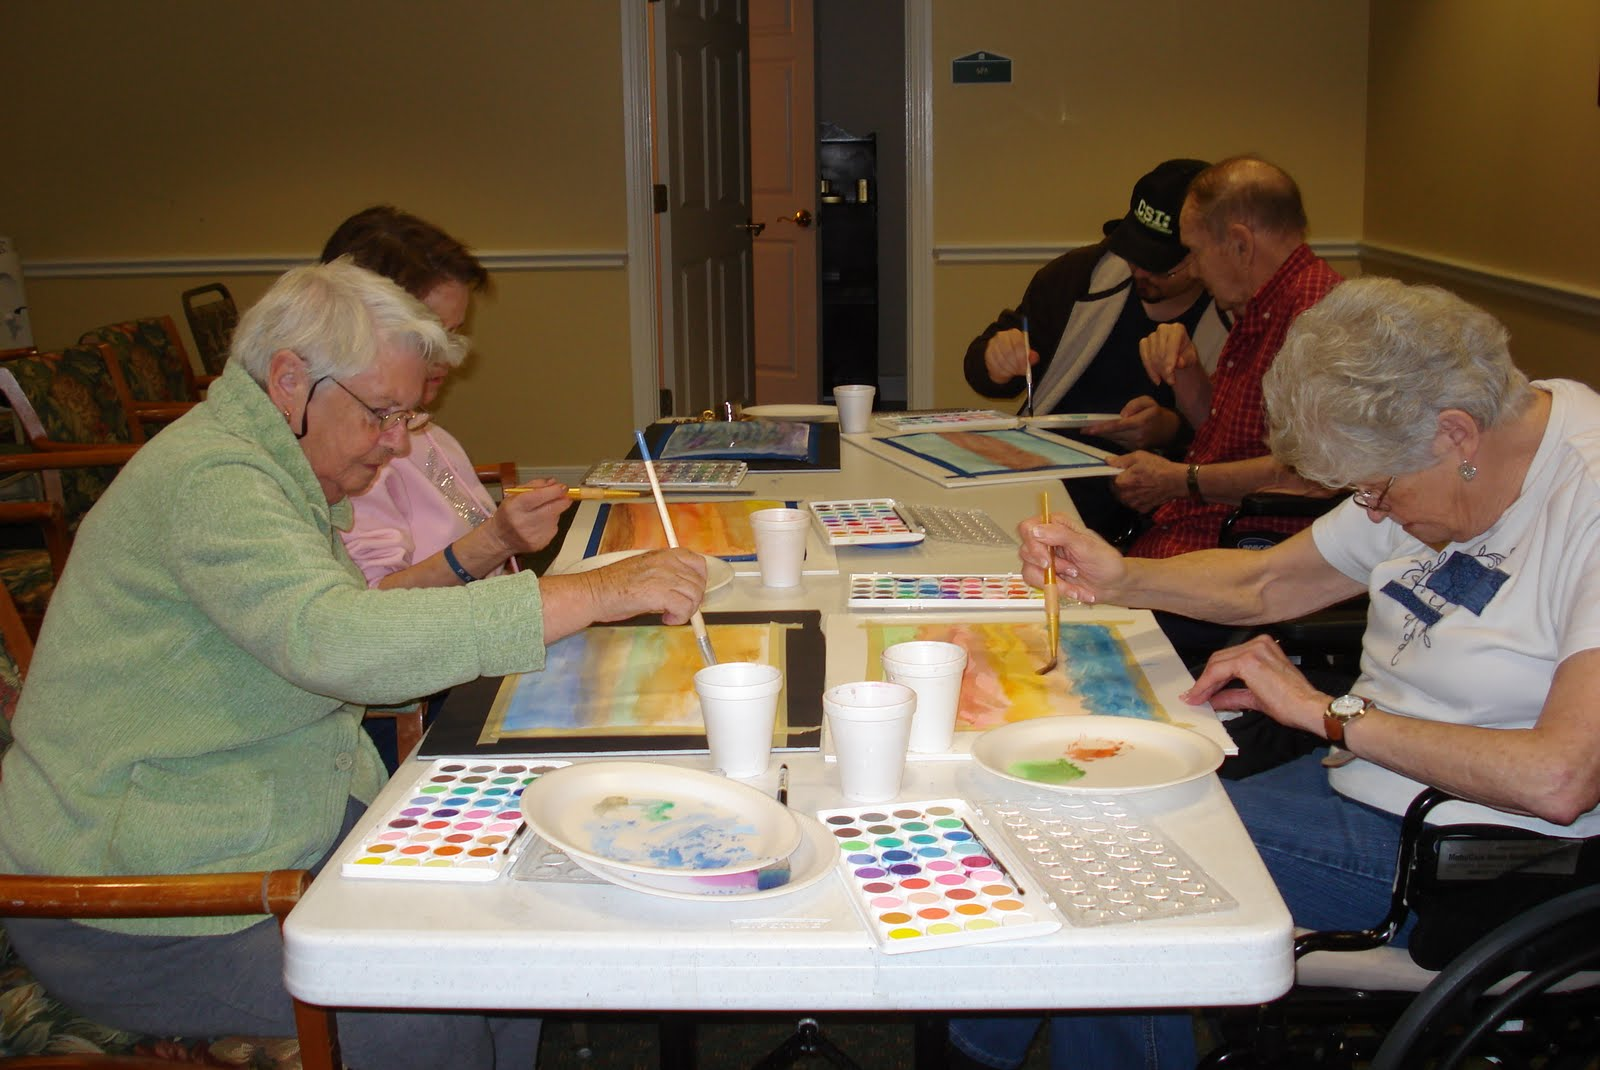 Elder life engagement proven benefits of art programs for for Arts and crafts for seniors